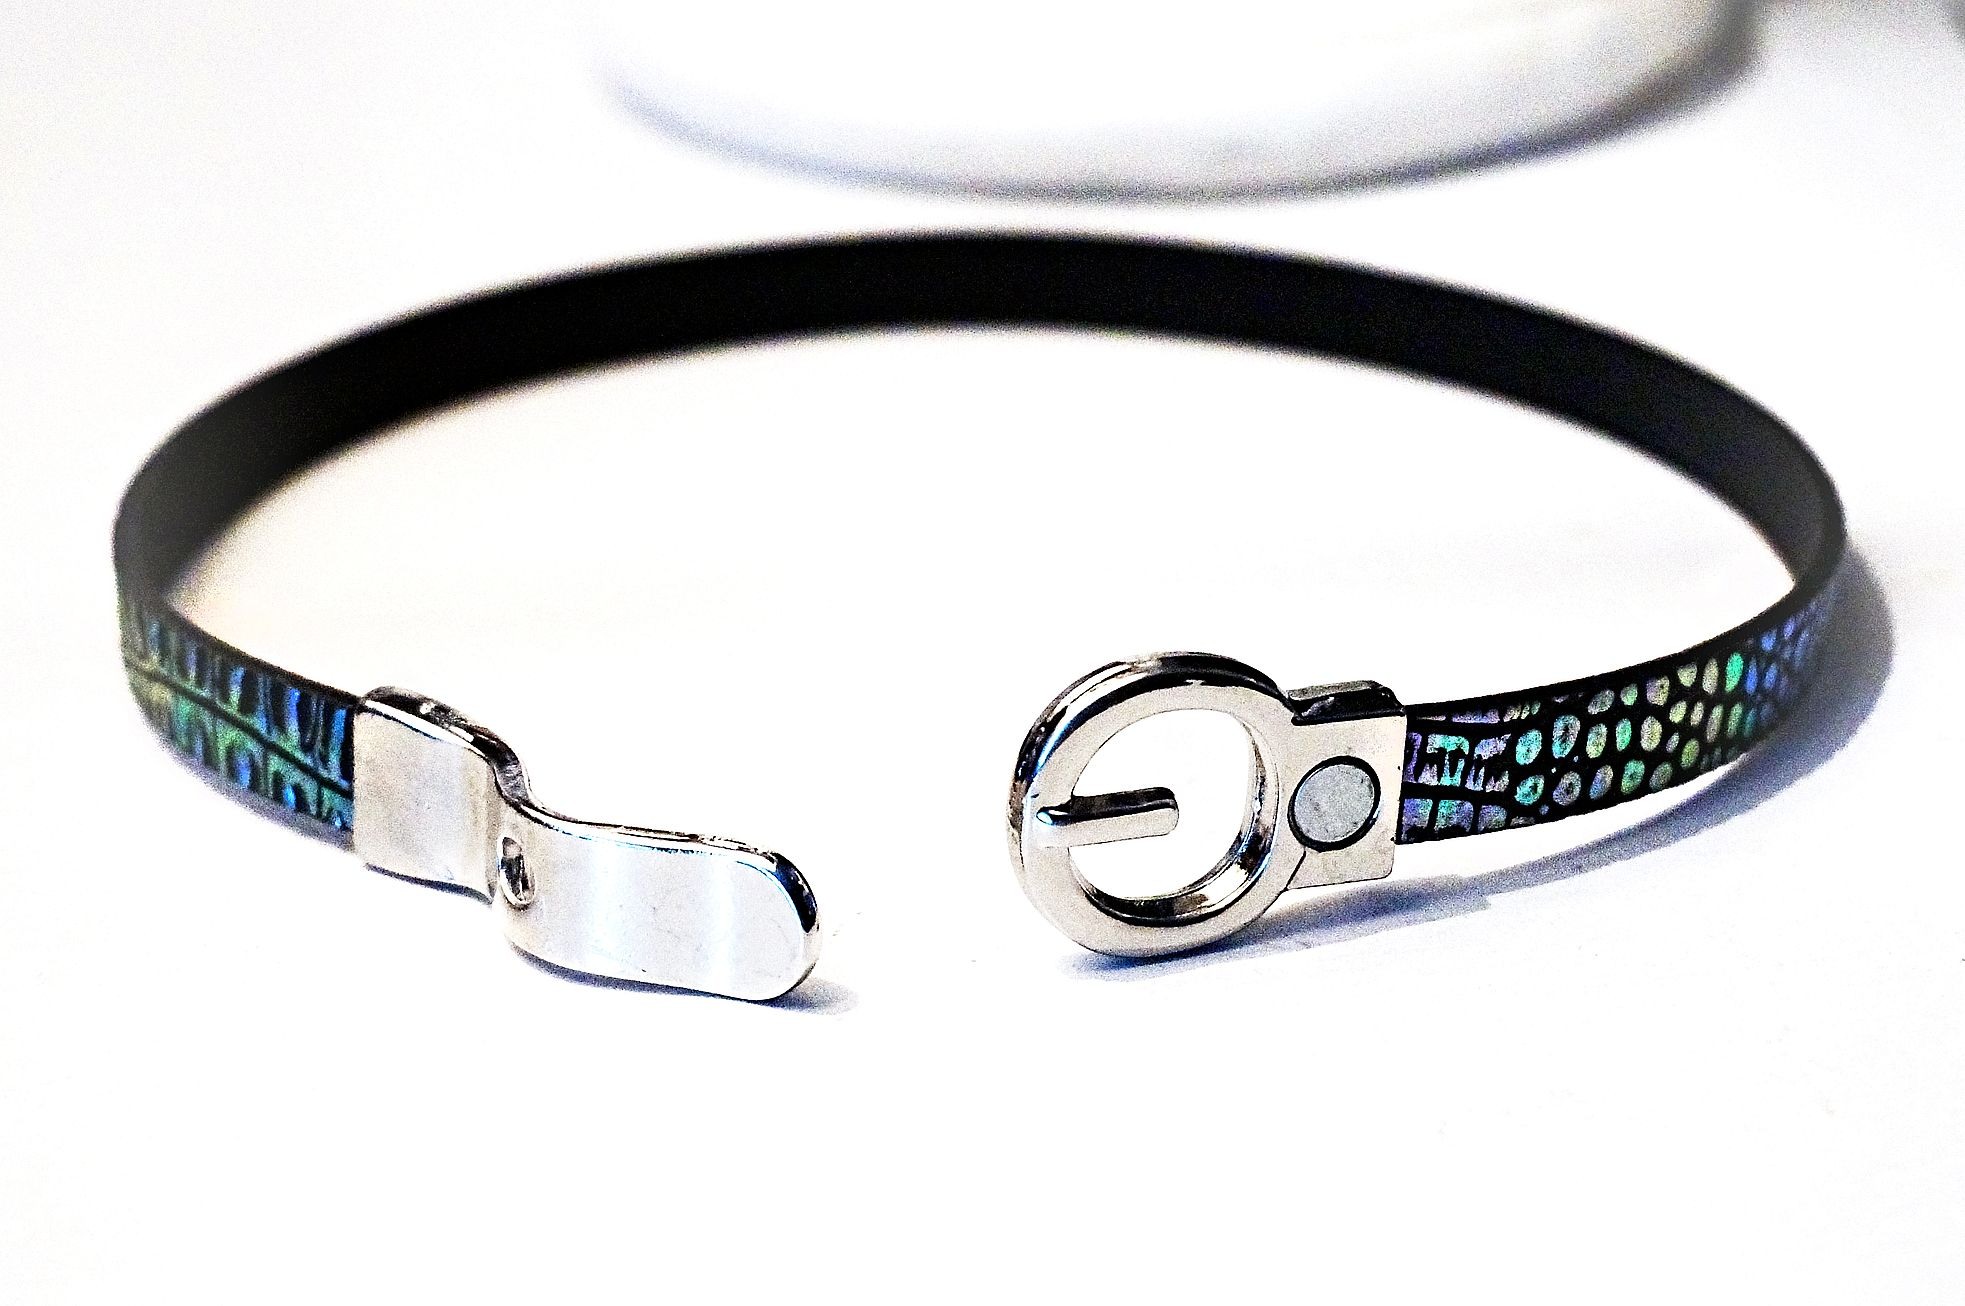 Submissive collar choker necklace Hippie Clothing psychedelic